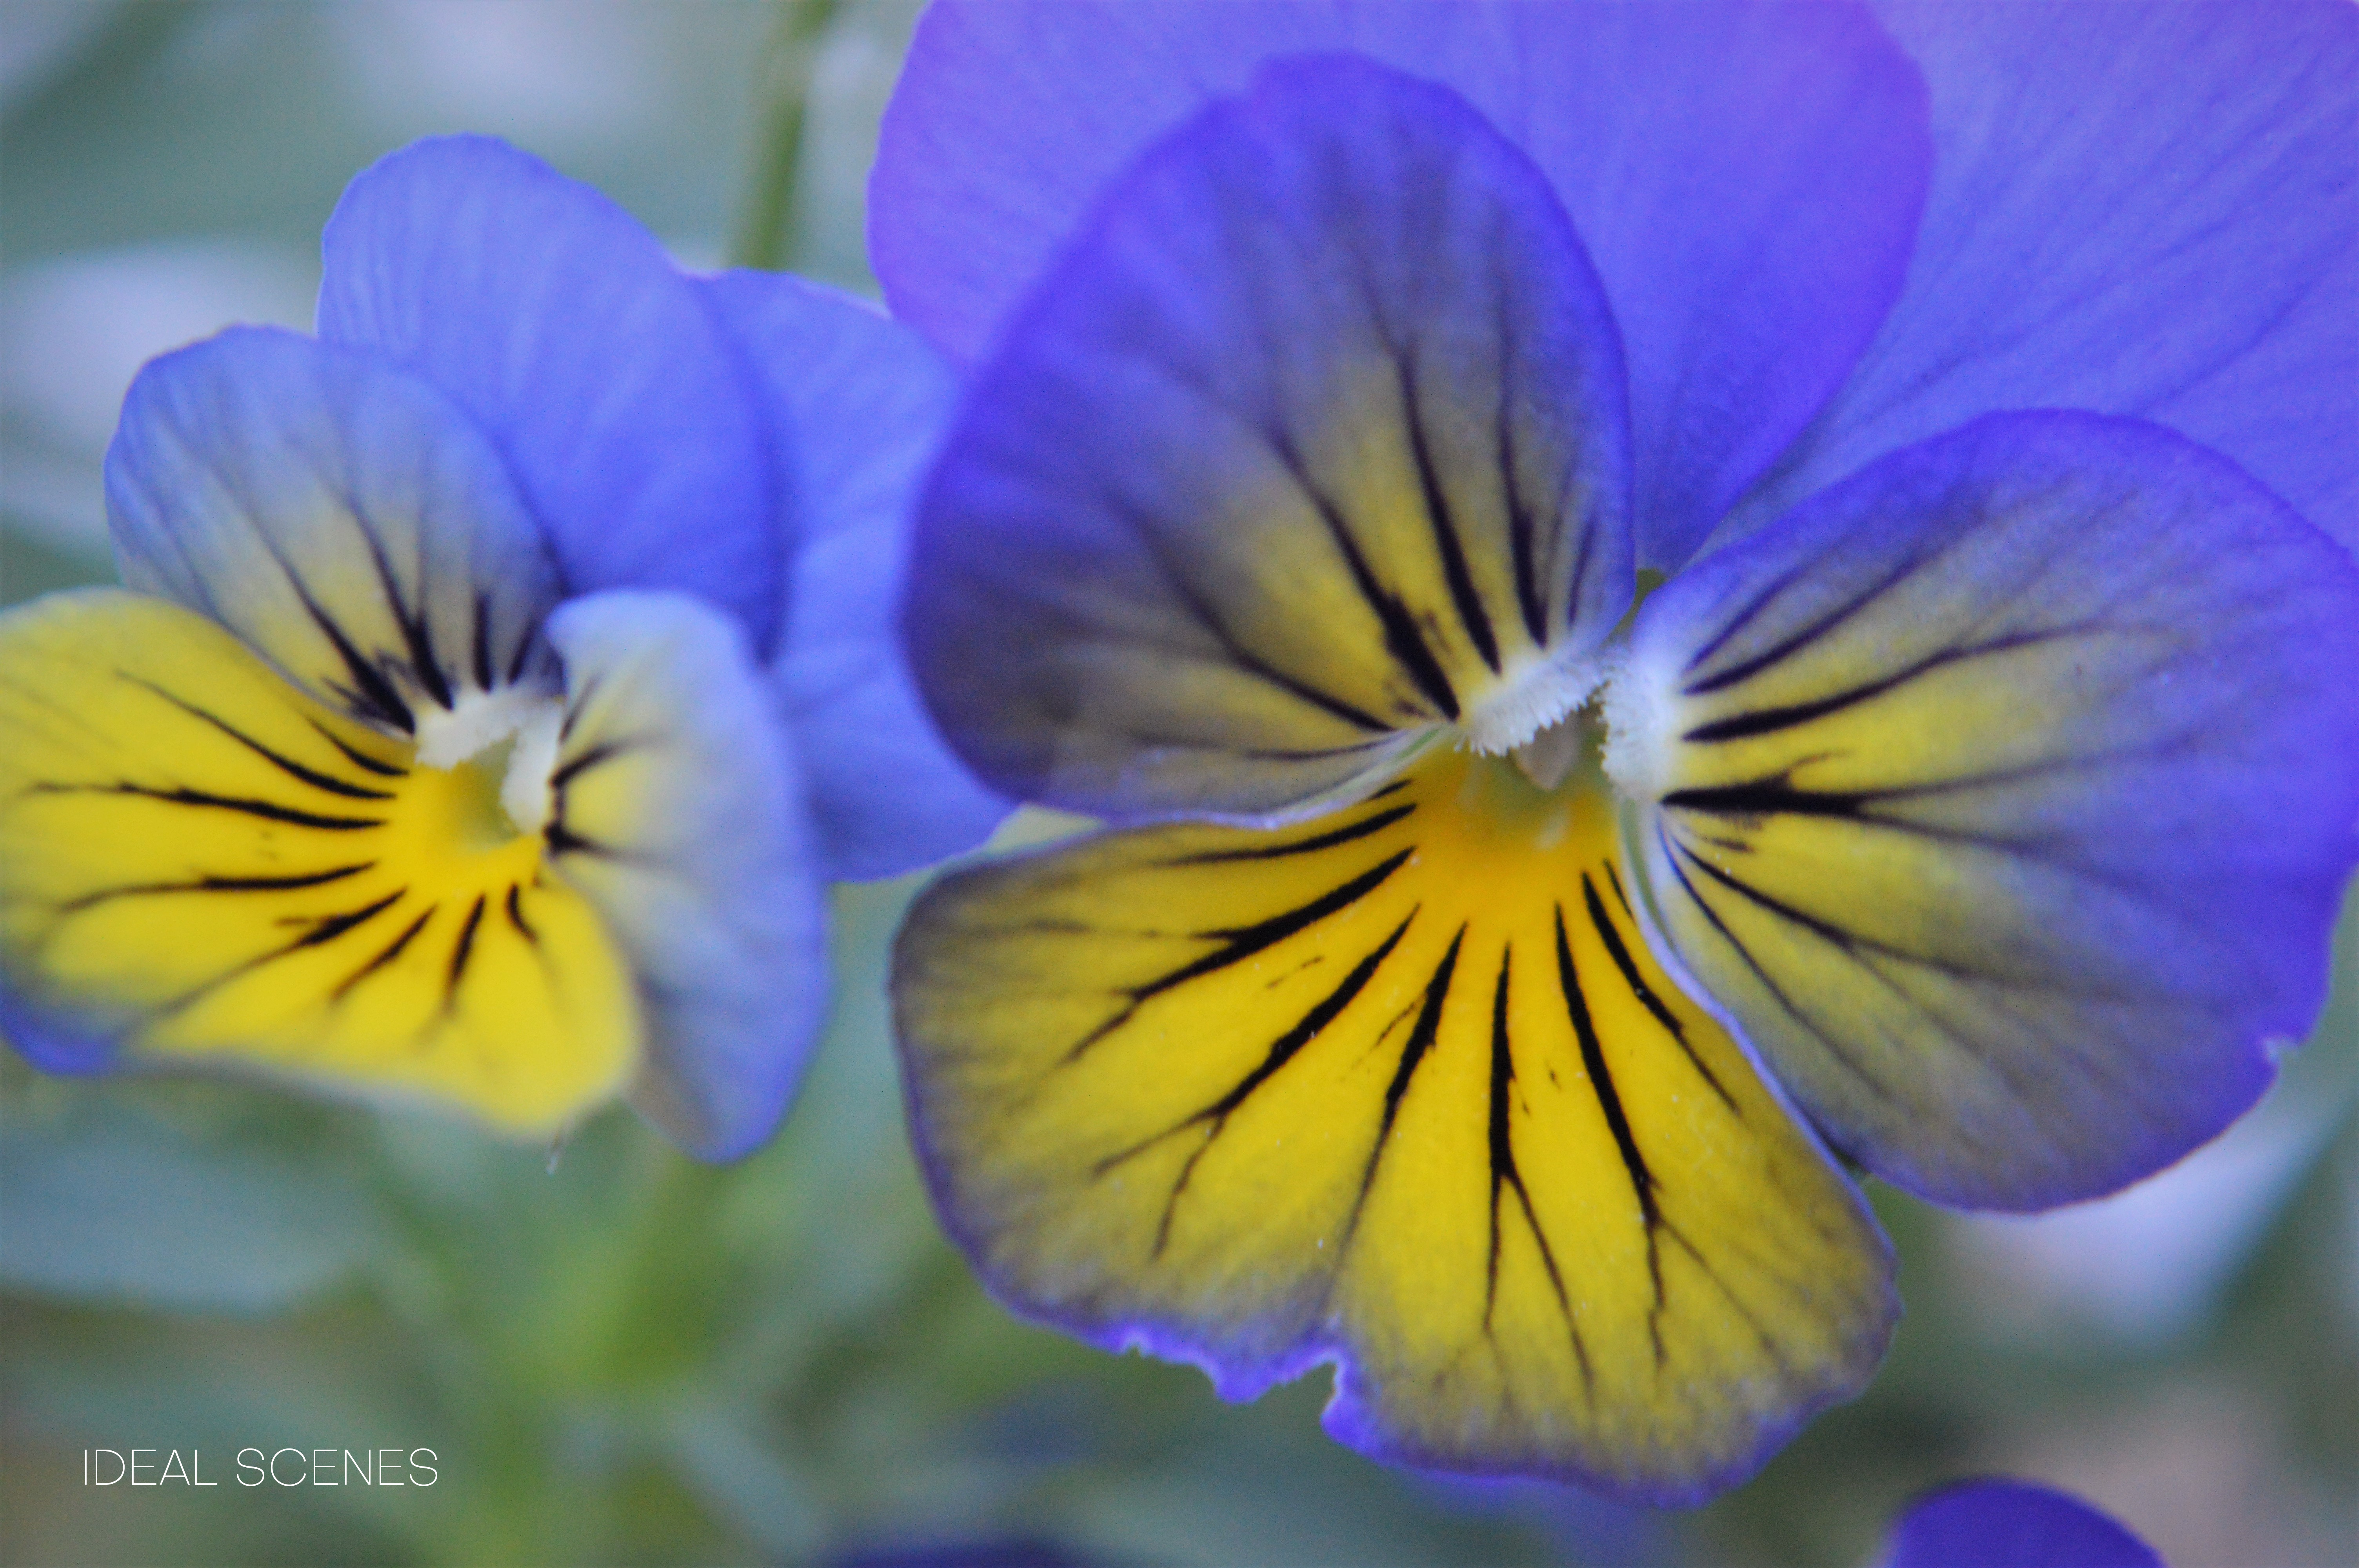 Two Pansies